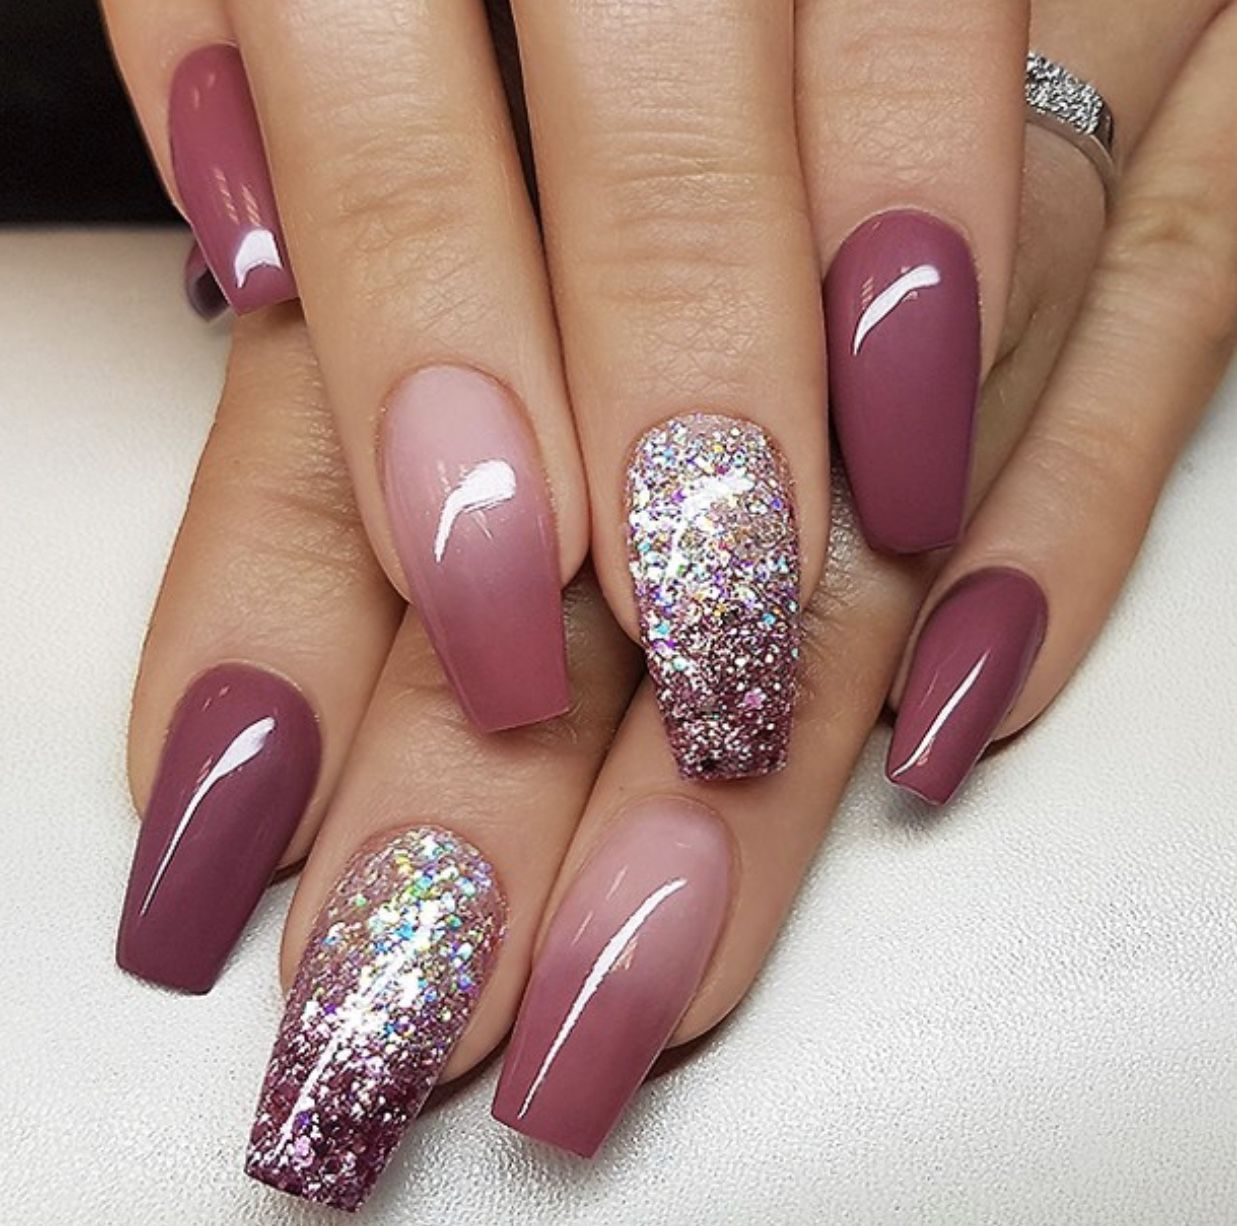 Sns Nail Designs For Fall Ombre Burgundy Share Your Nails Nailsstock Ombre Nail Art Designs Sns Nails Designs Fall Nail Art Designs